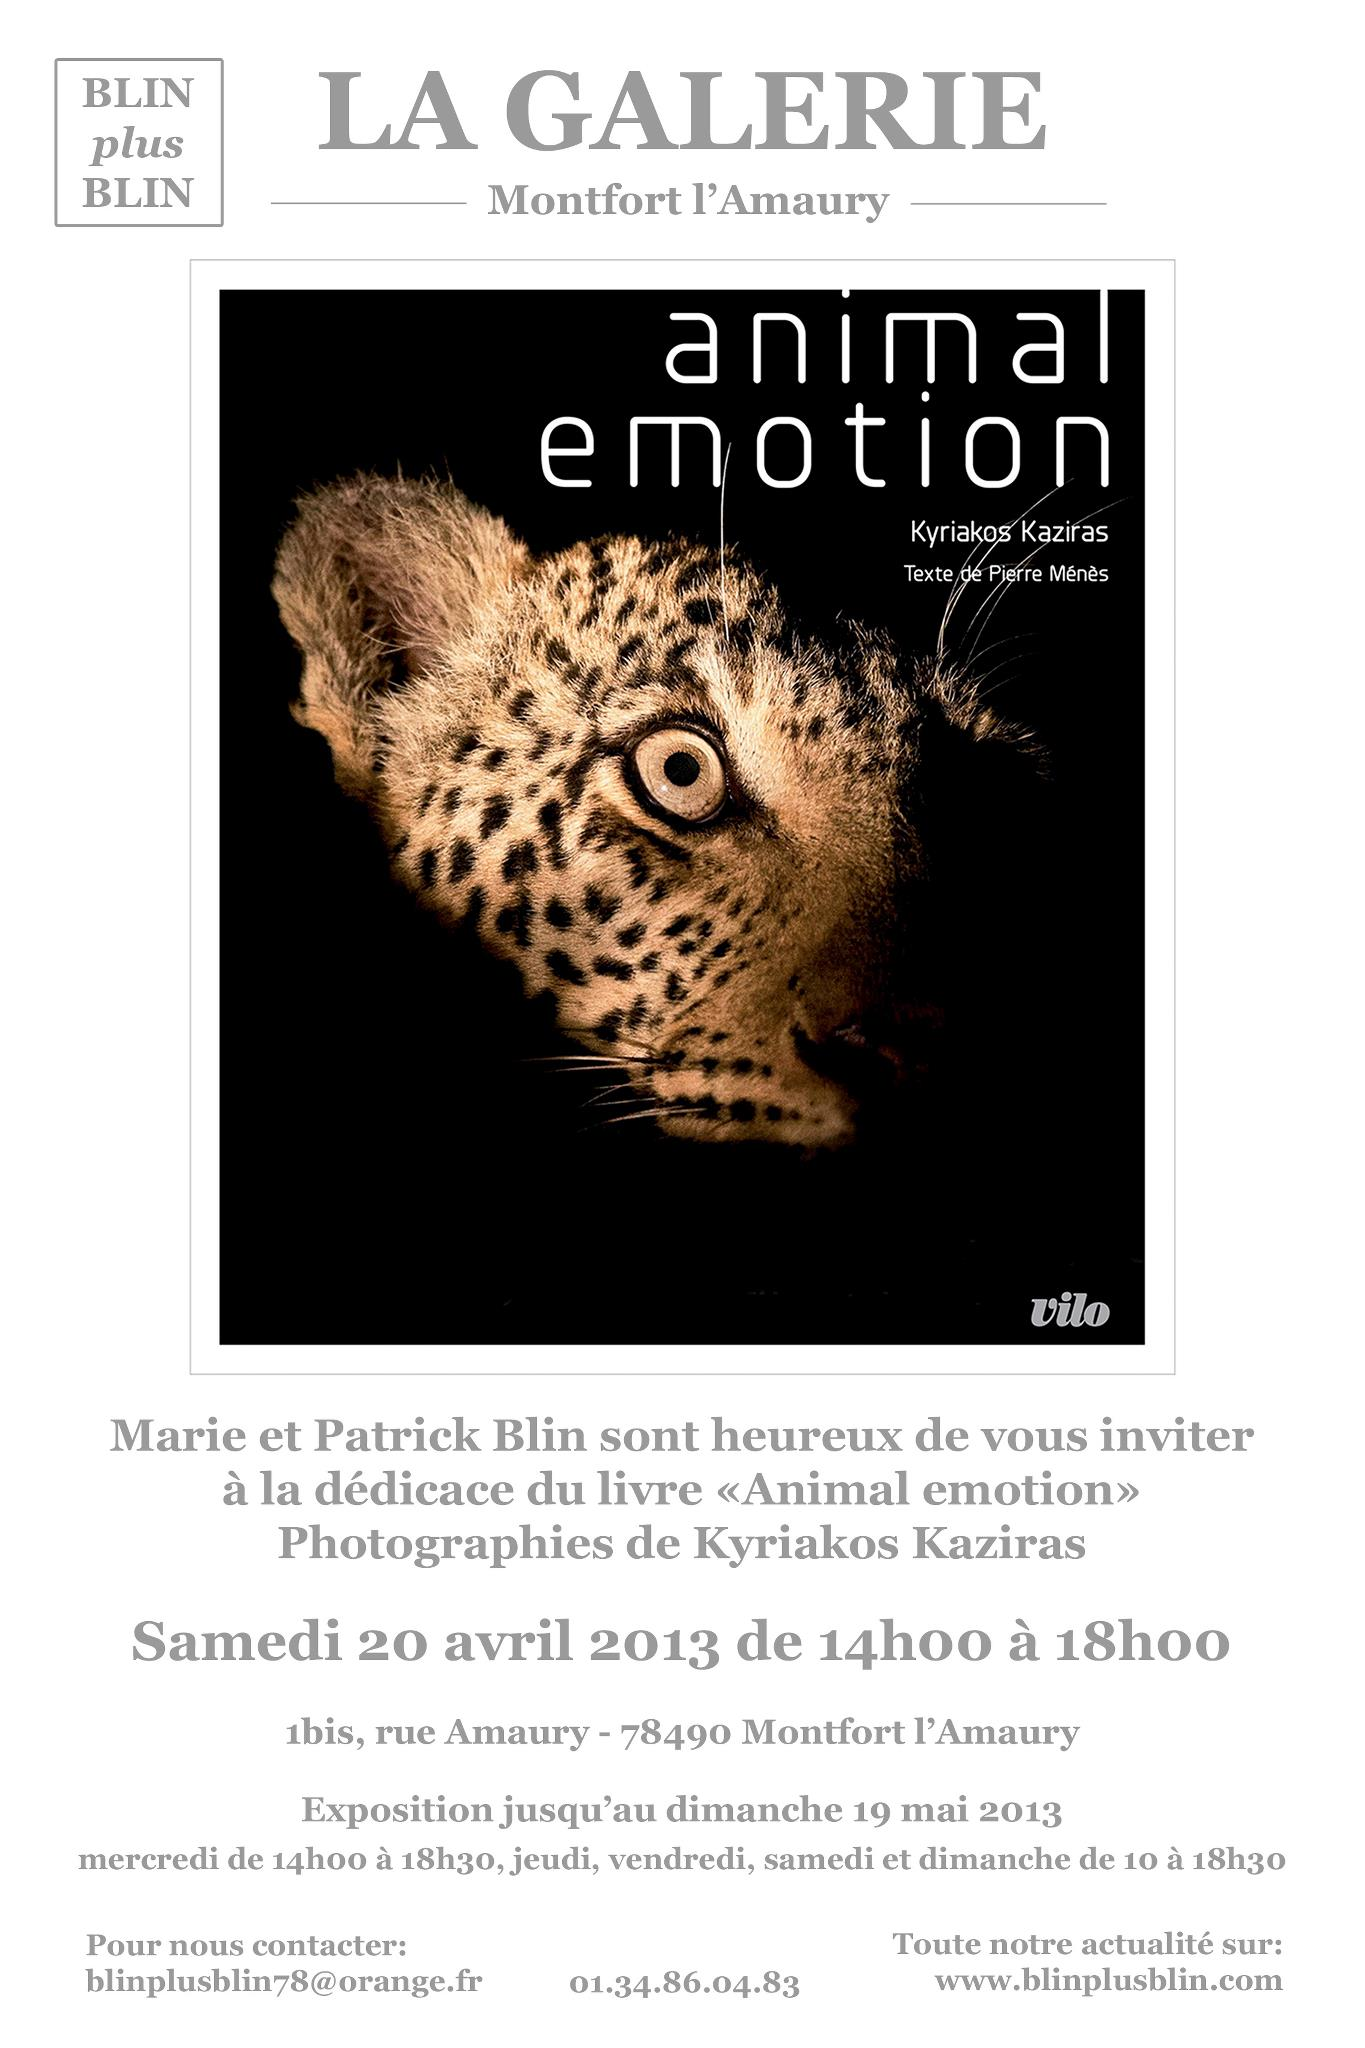 Exposition Animal Emotion à la Galerie Blin plus Blin